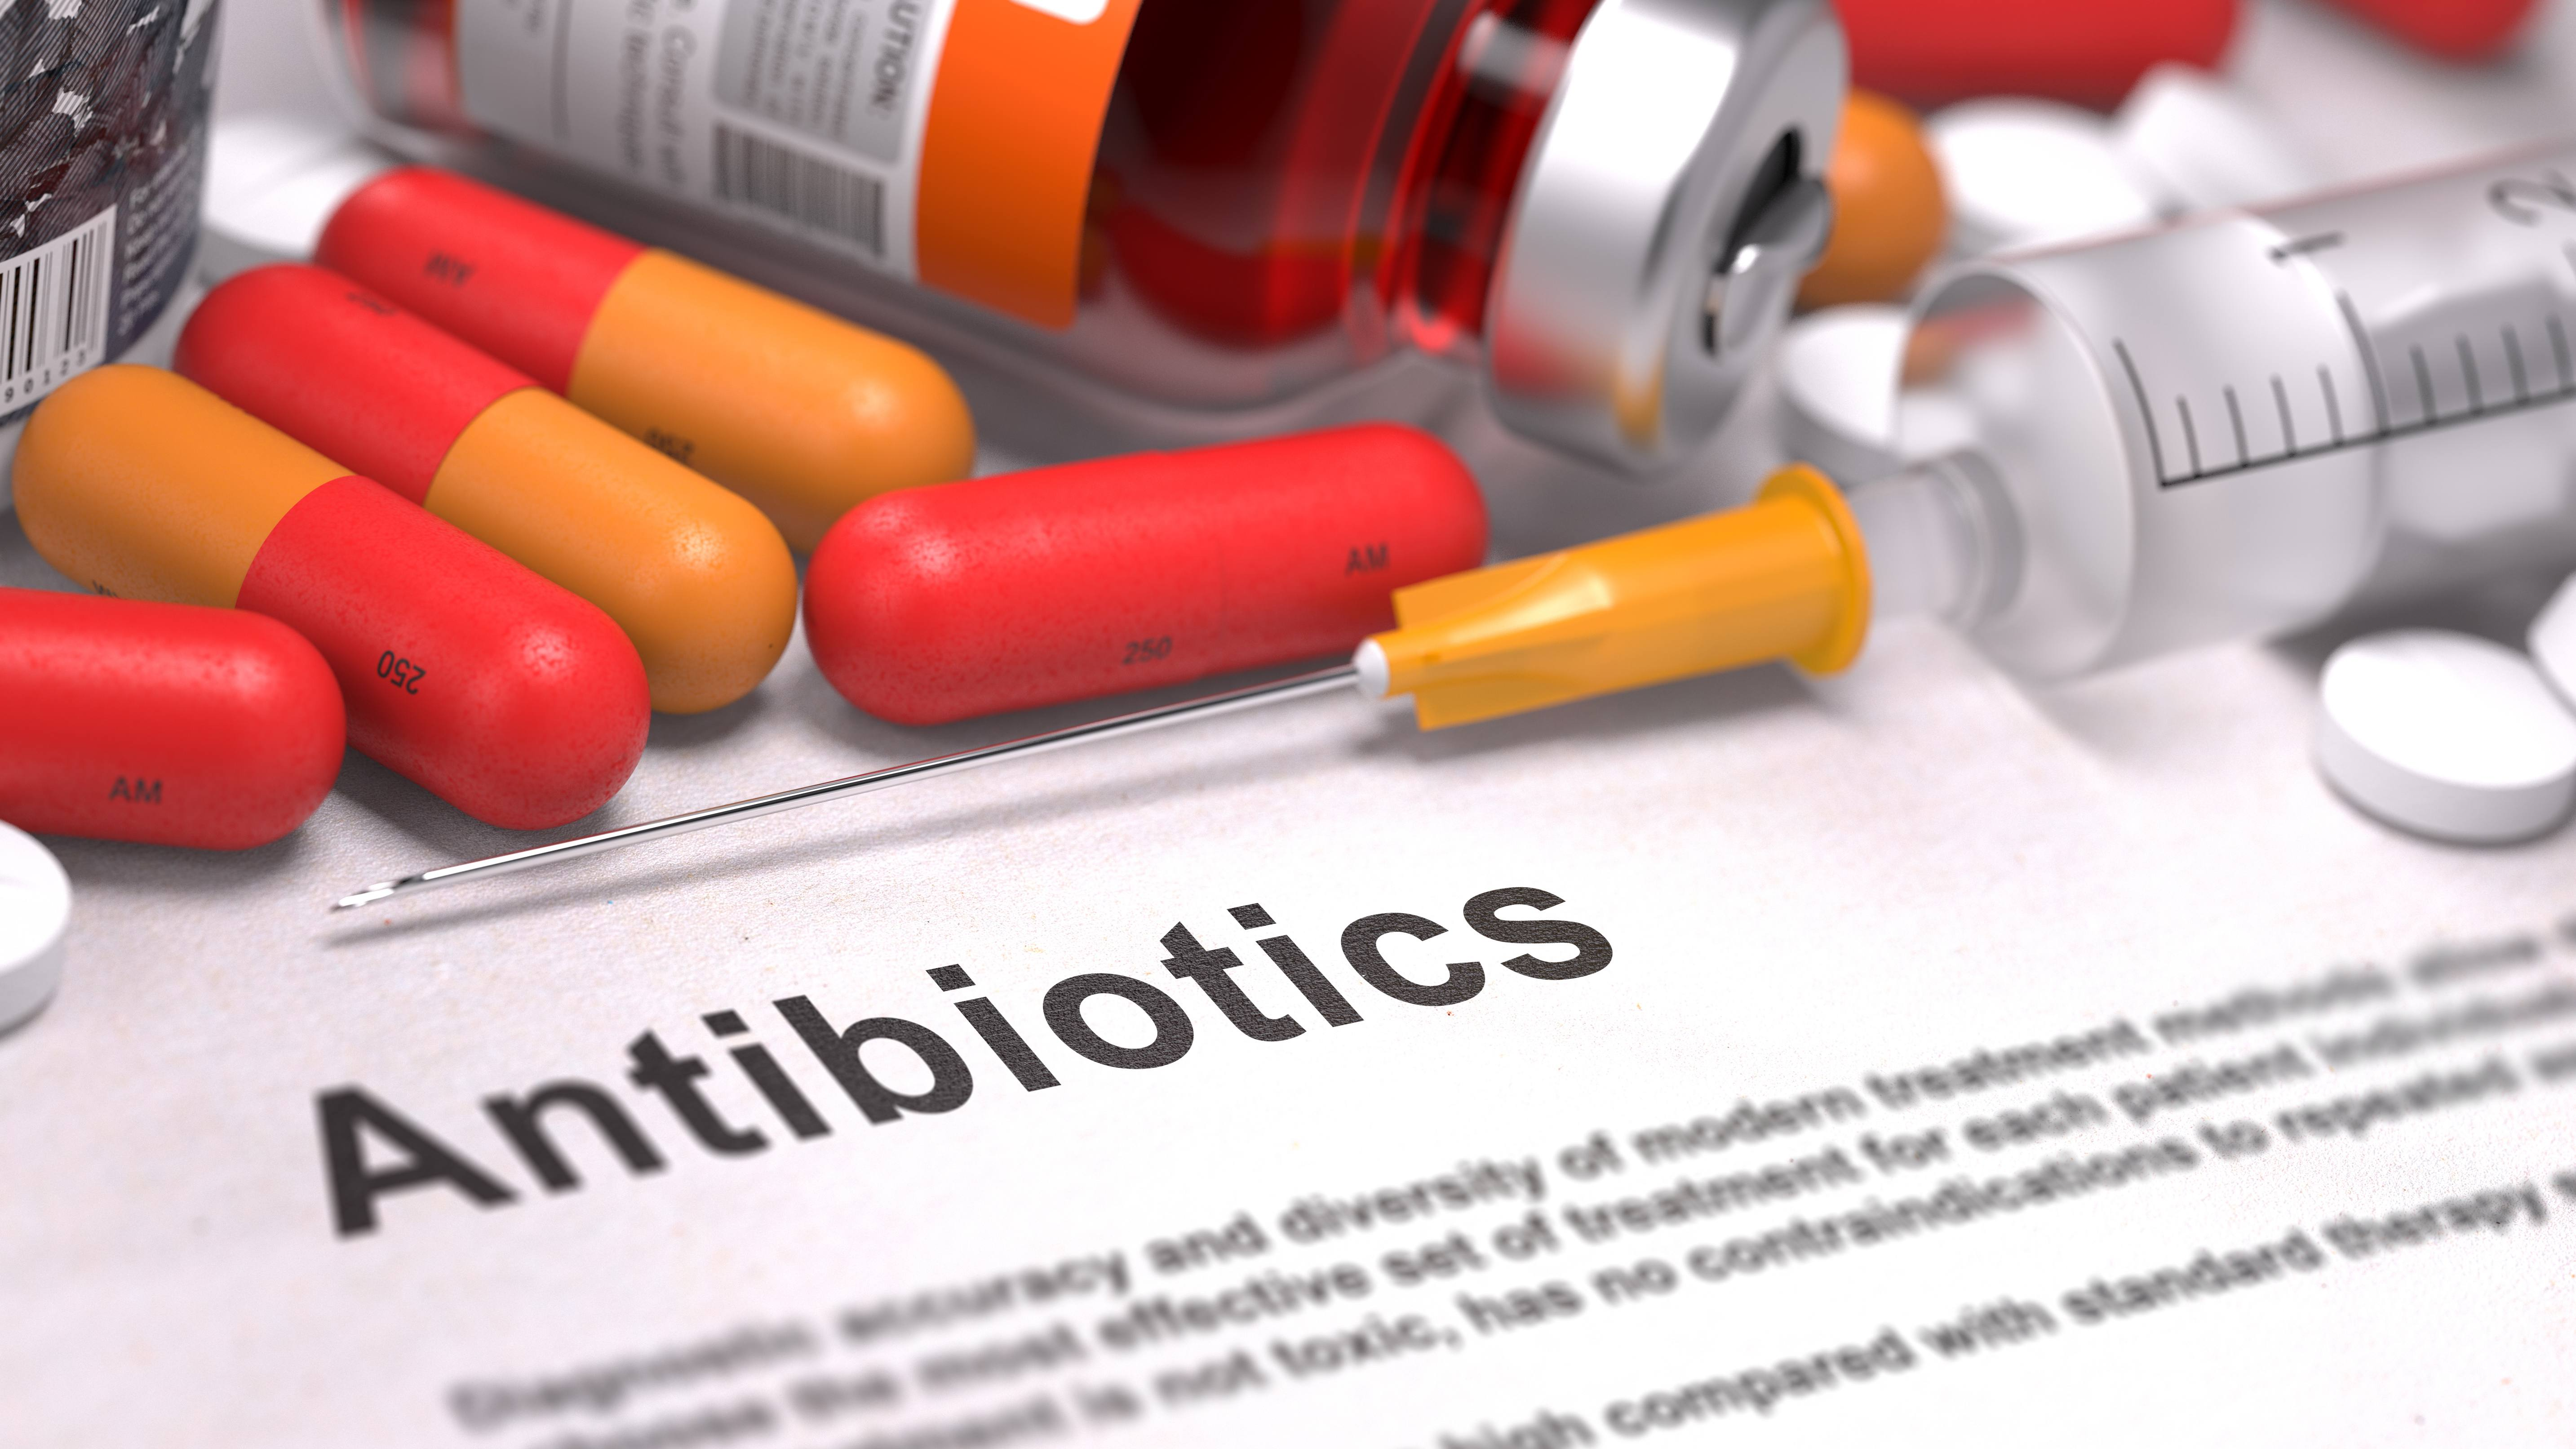 medication bottles, tablets, capules and a syringe spilled out on a piece of paper with the word Antibiotics written on it